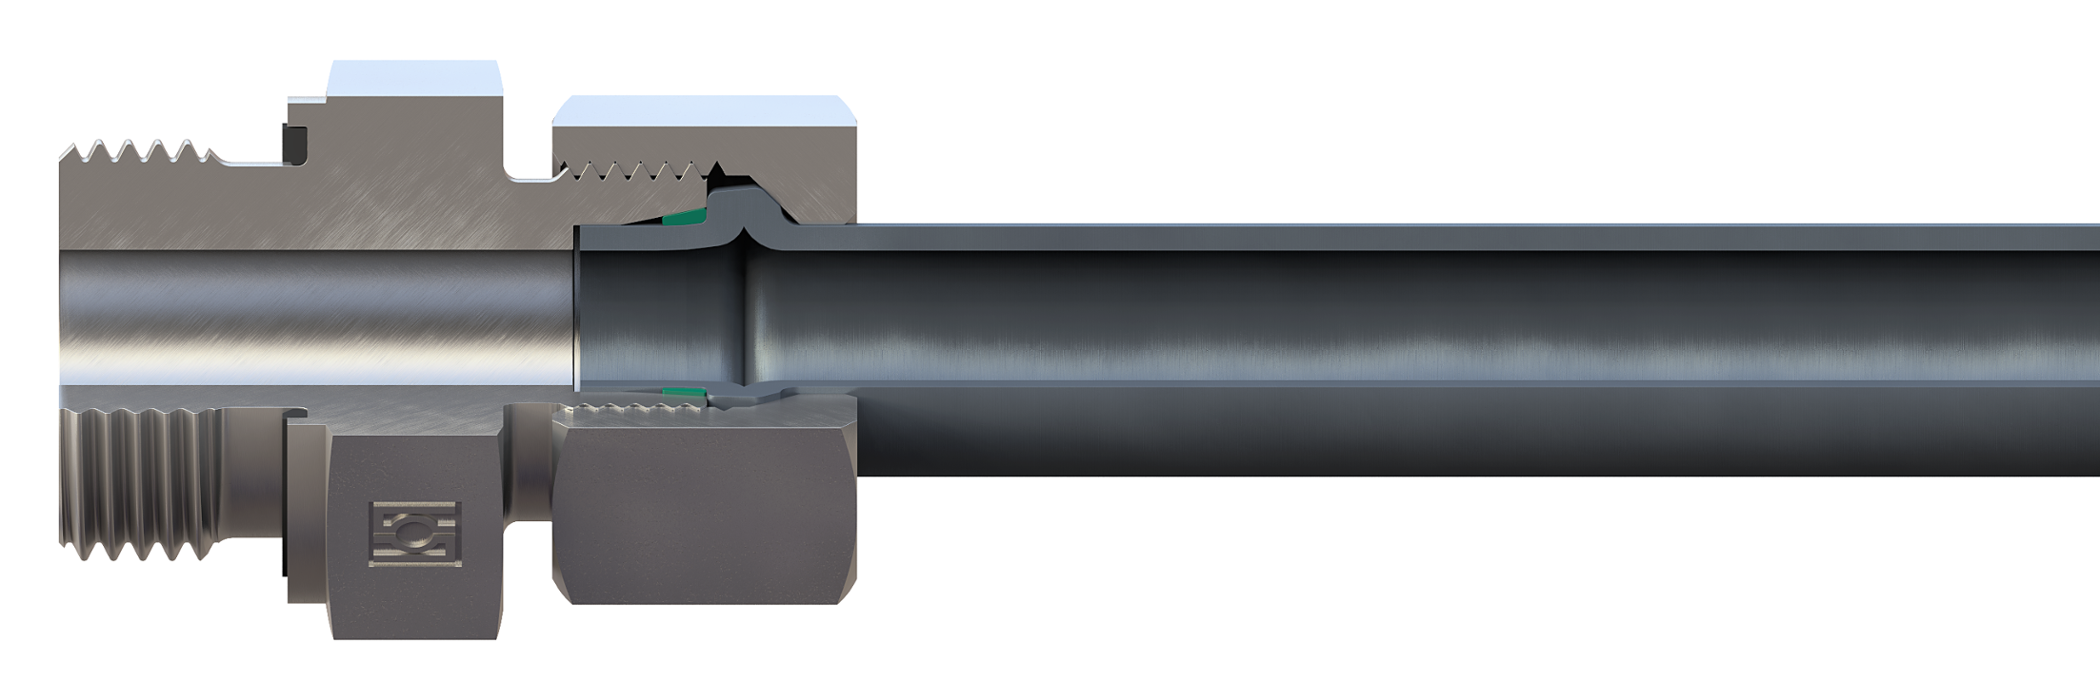 STAUFF Form EVOTube Forming System